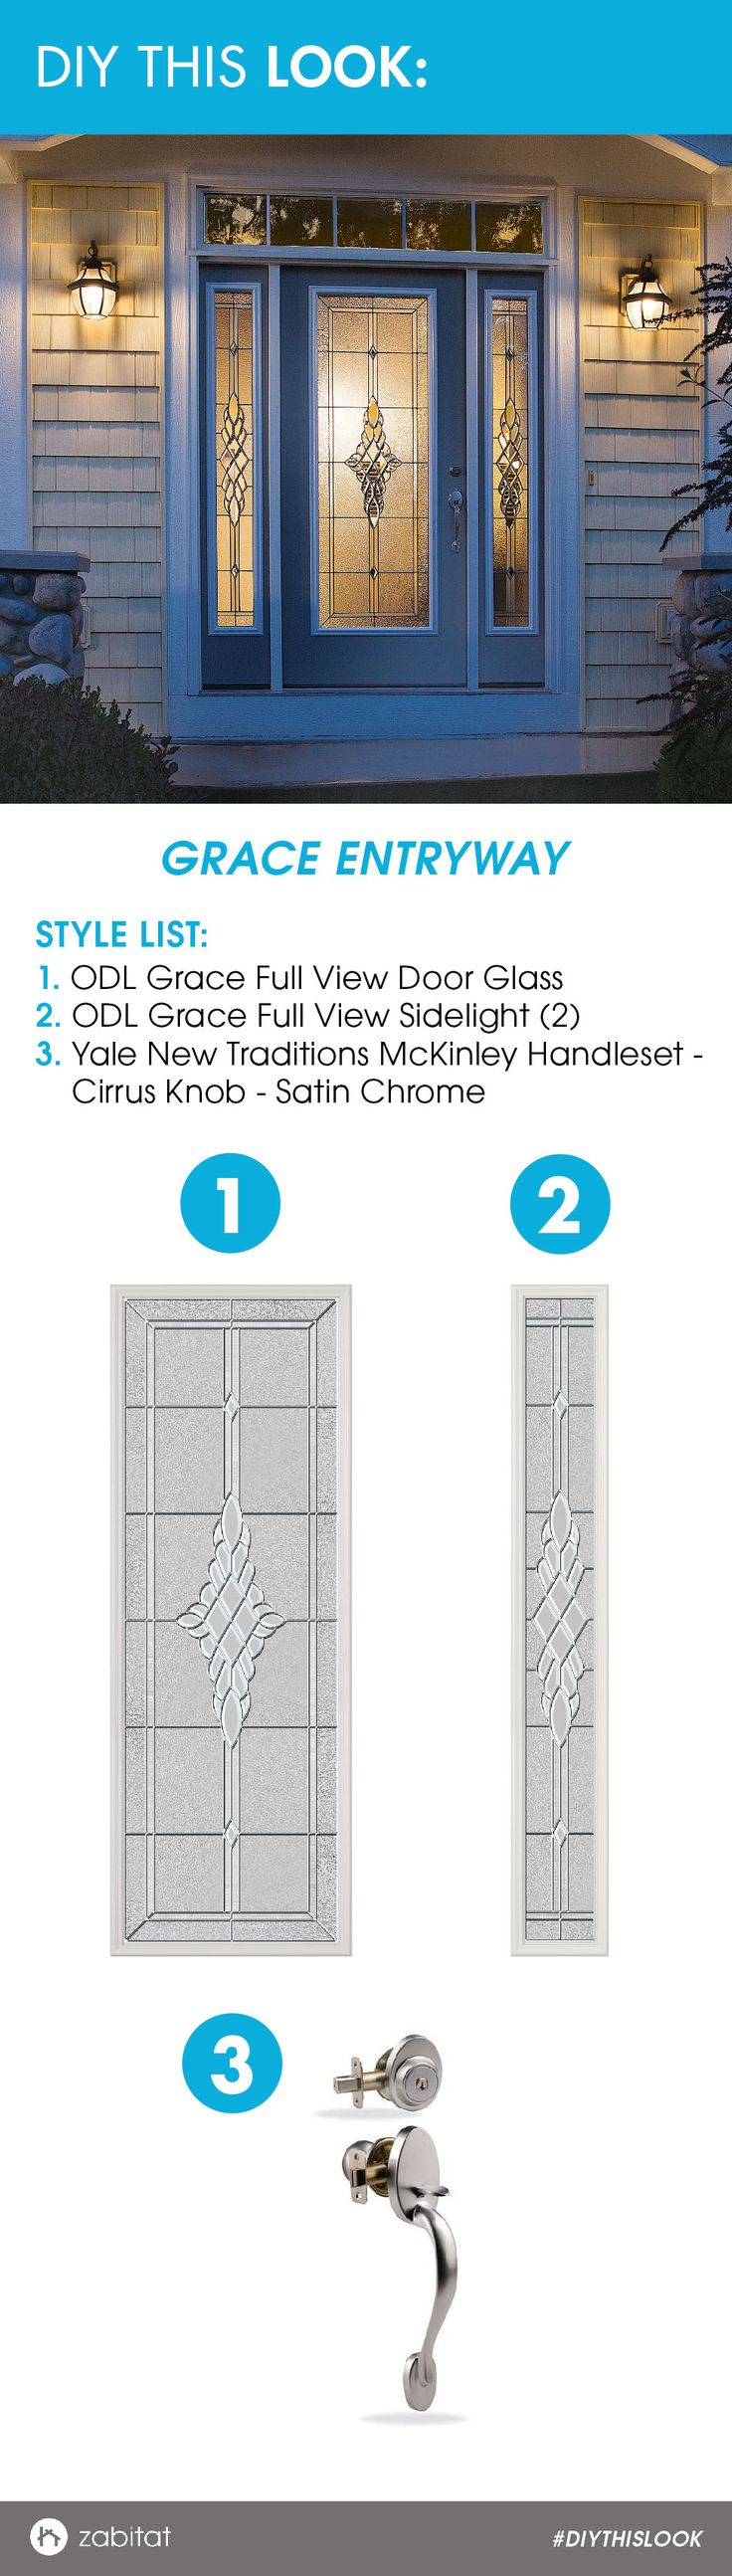 ODL Grace Door Glass Insert paired with a Yale New Traditions Satin Chrome Handleset.